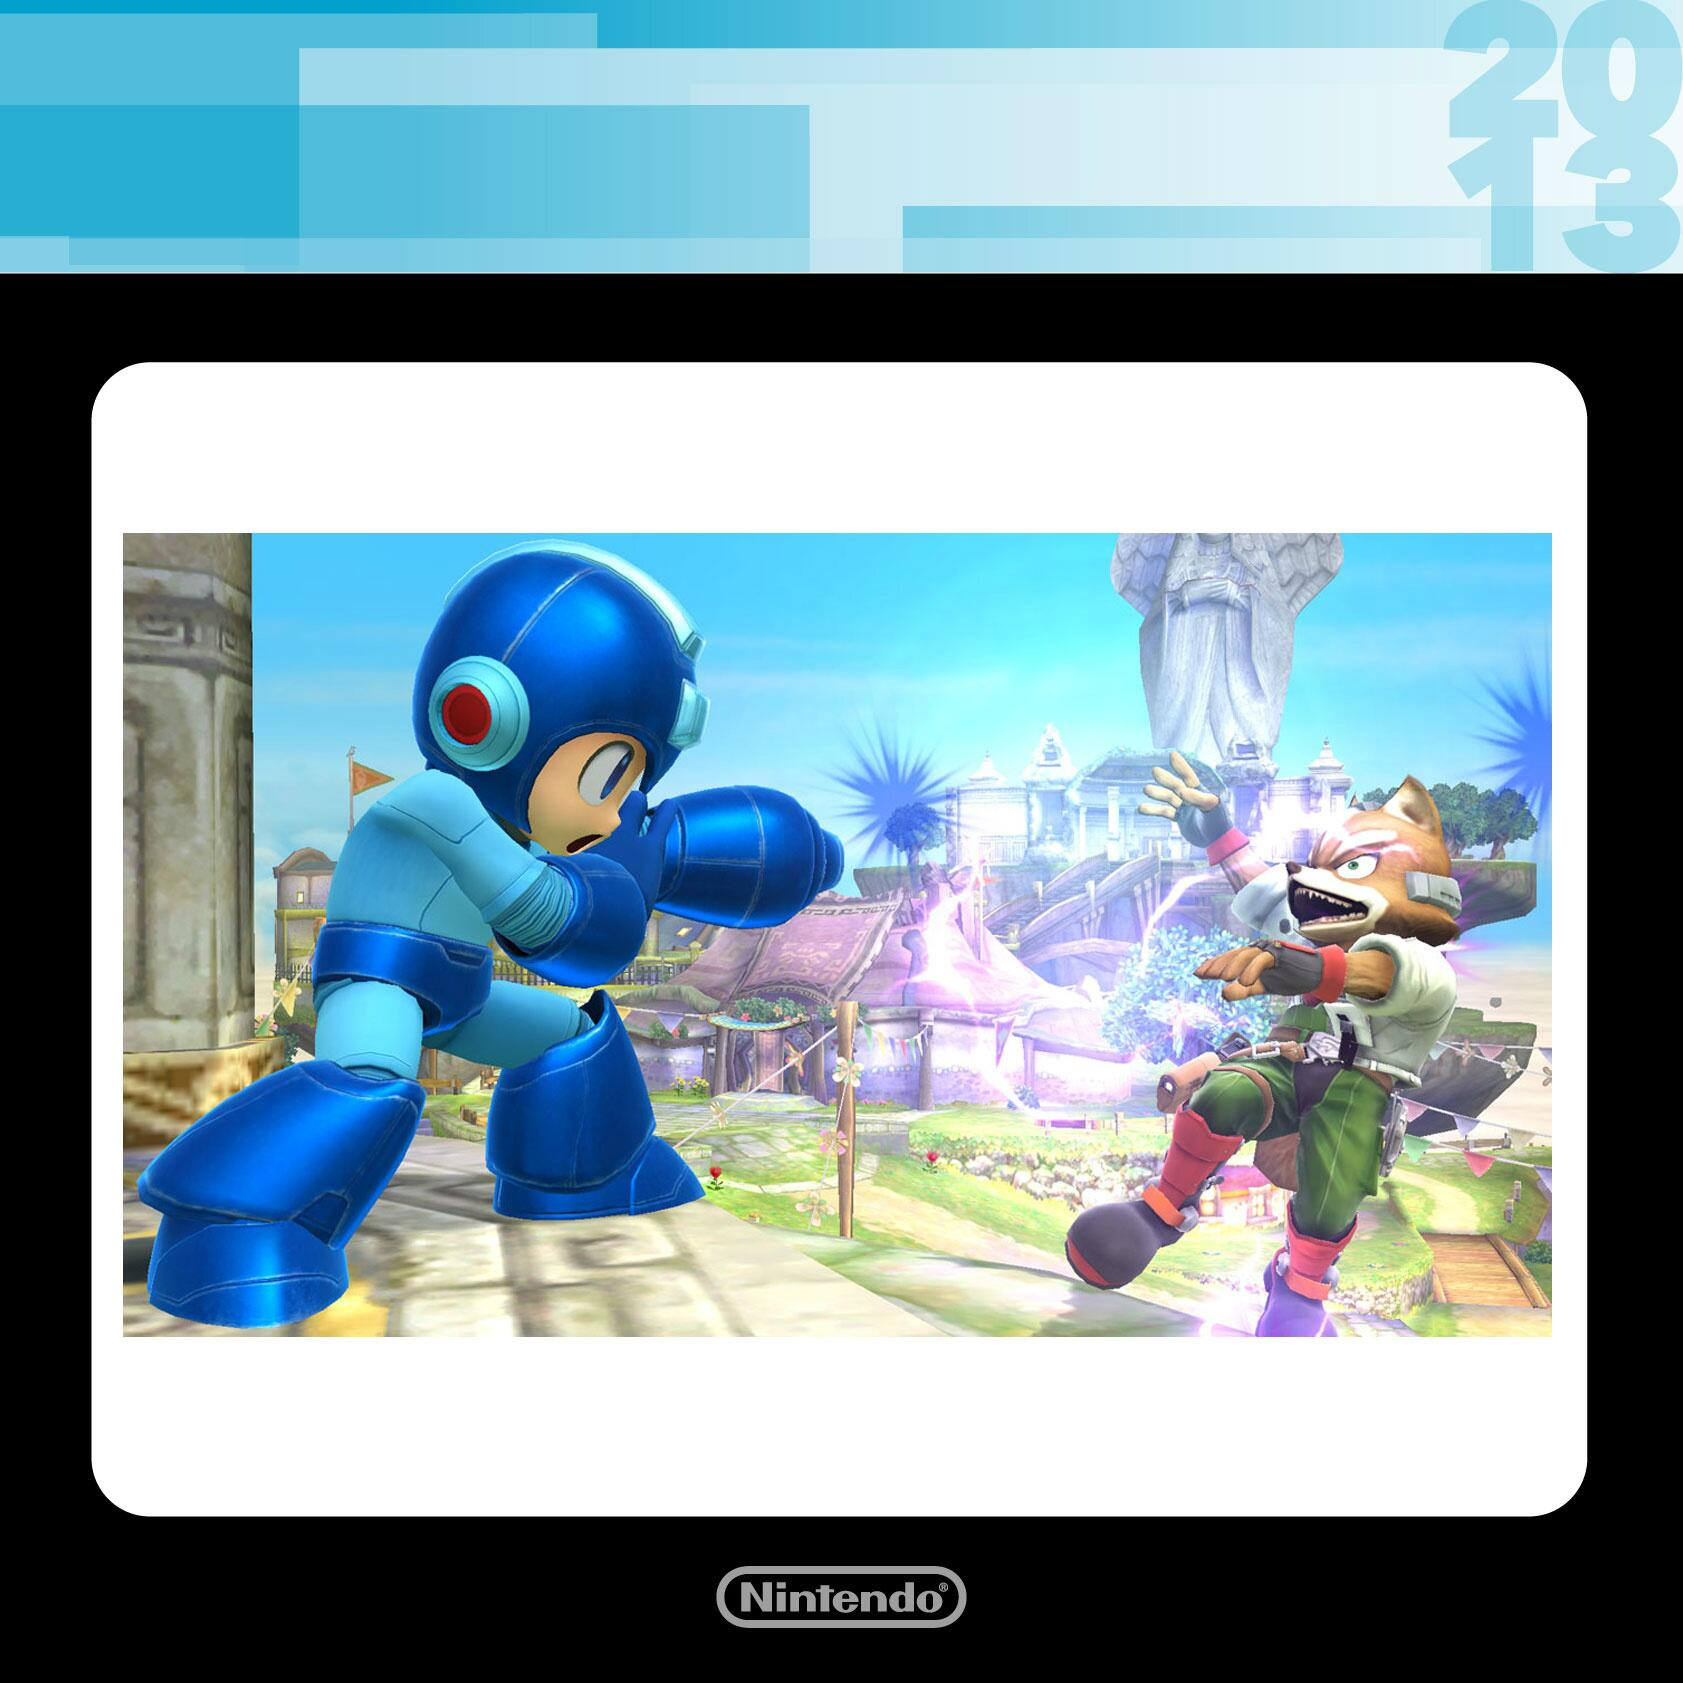 Twitter / NintendoAmerica: It looks like another challenger ...